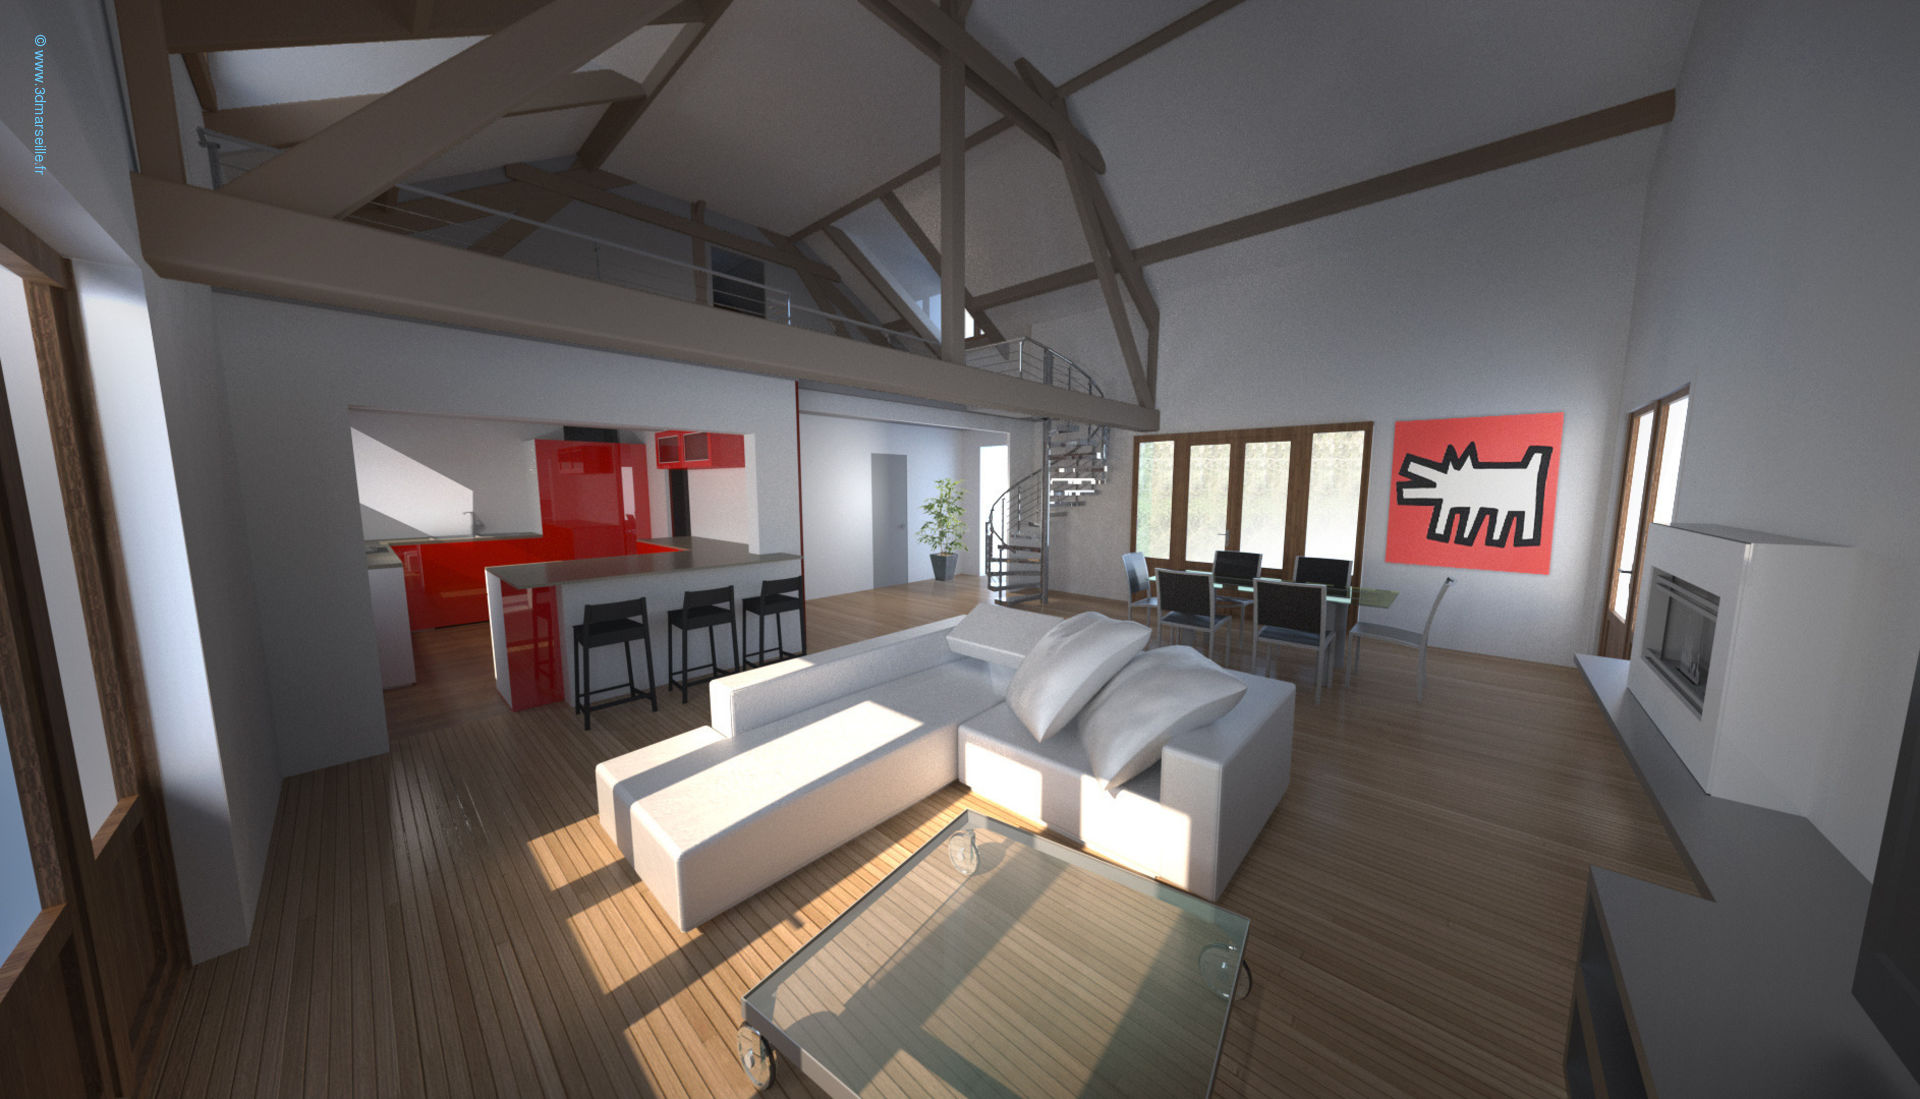 Projet d am nagement int rieur maison individuelle 3d for Plan 3d amenagement interieur